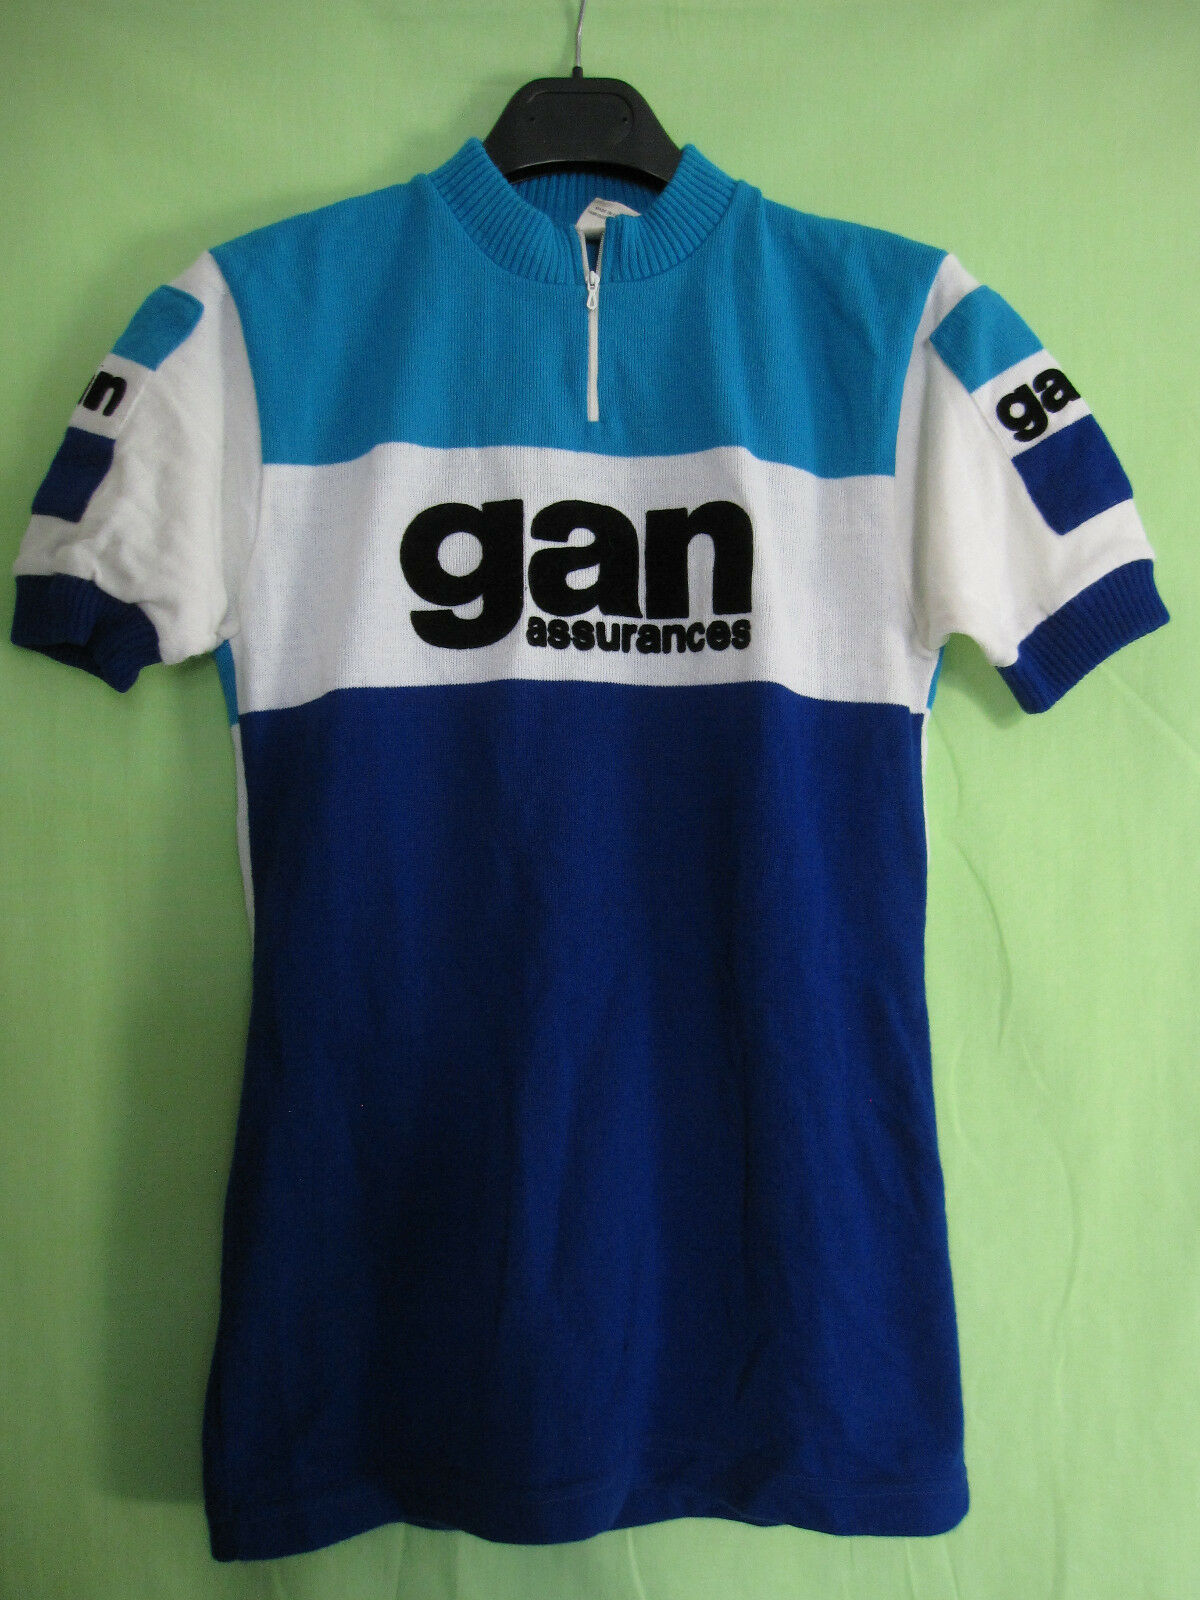 Vintage cycling jersey gan insurance acrylic cycles  70's jersey - 3 m  preferential